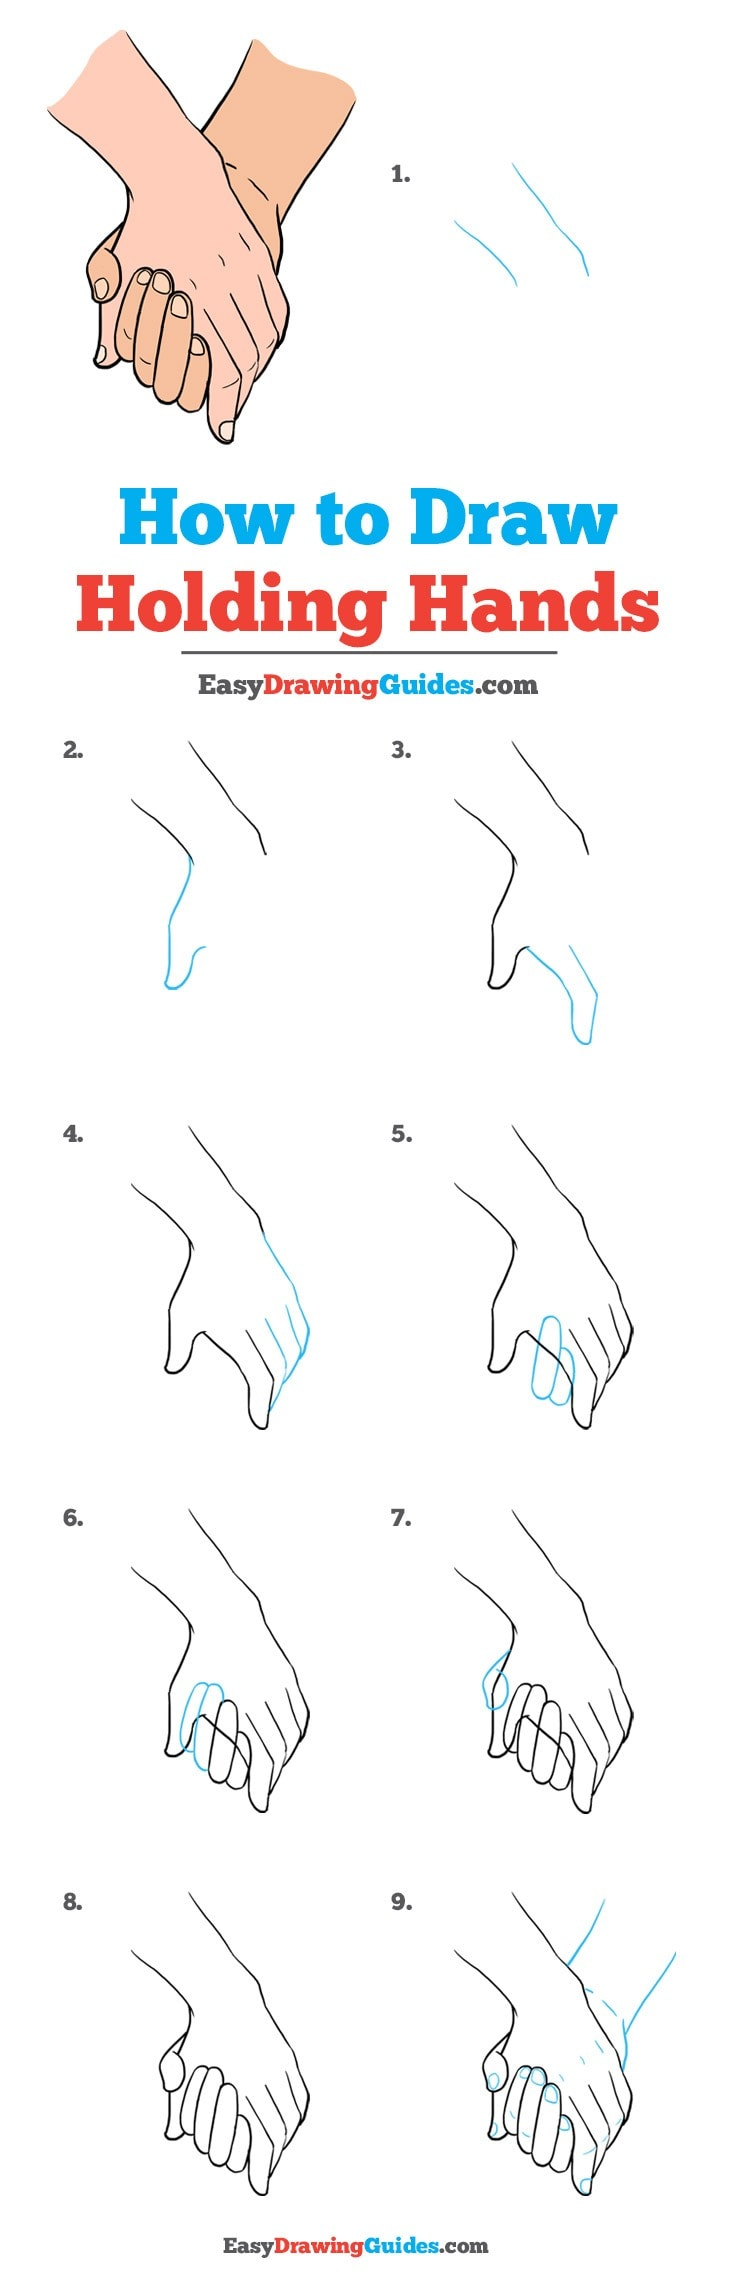 How To Draw Hand Holding : holding, Holding, Hands, Really, Drawing, Tutorial